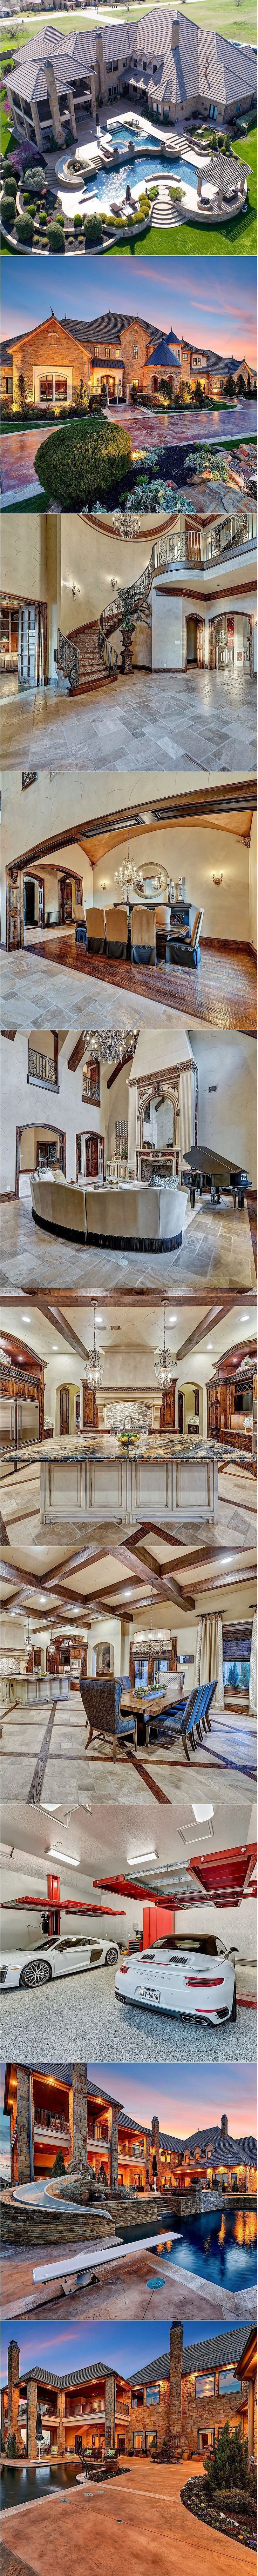 Extraordinary Montserrat estate sprawling over 2 acres with beauty luxury throughout. Masterfully designed with no detail left out. Step into the grand foyer with soaring ceilings stunning stone wood detail. Entertain with ease in the formal living dining areas. Casual living dining, wet bar, playroom, media room, handsome study guest bedroom downstairs. Gourmet kitchen with […]